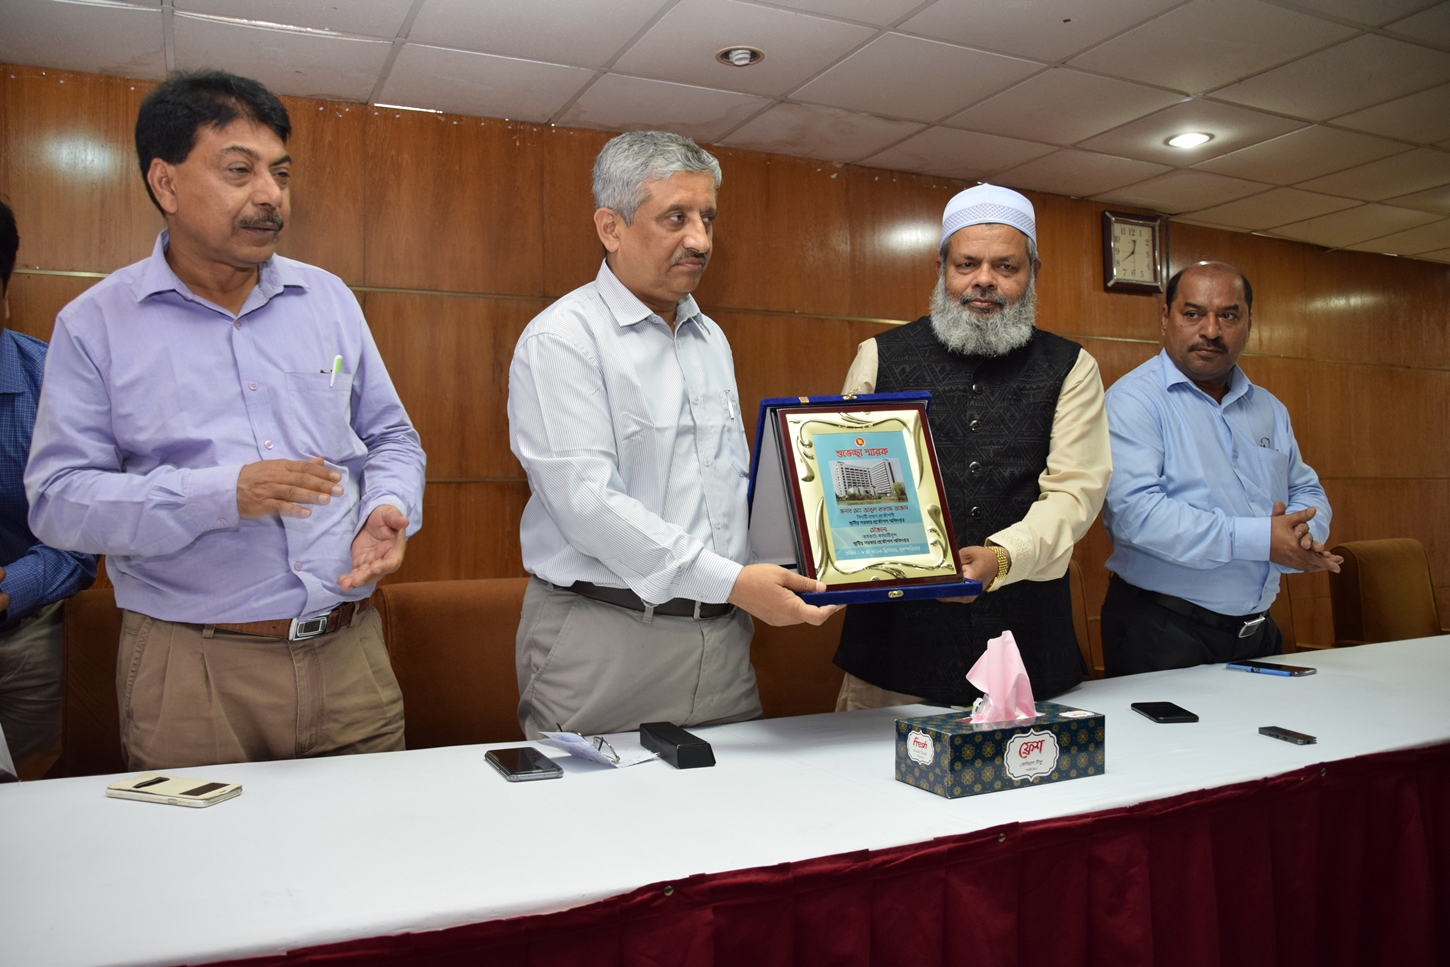 Farewell ceremony of Former Chief Engineer Md. Abul Kalam Azad on 09/05/2019.